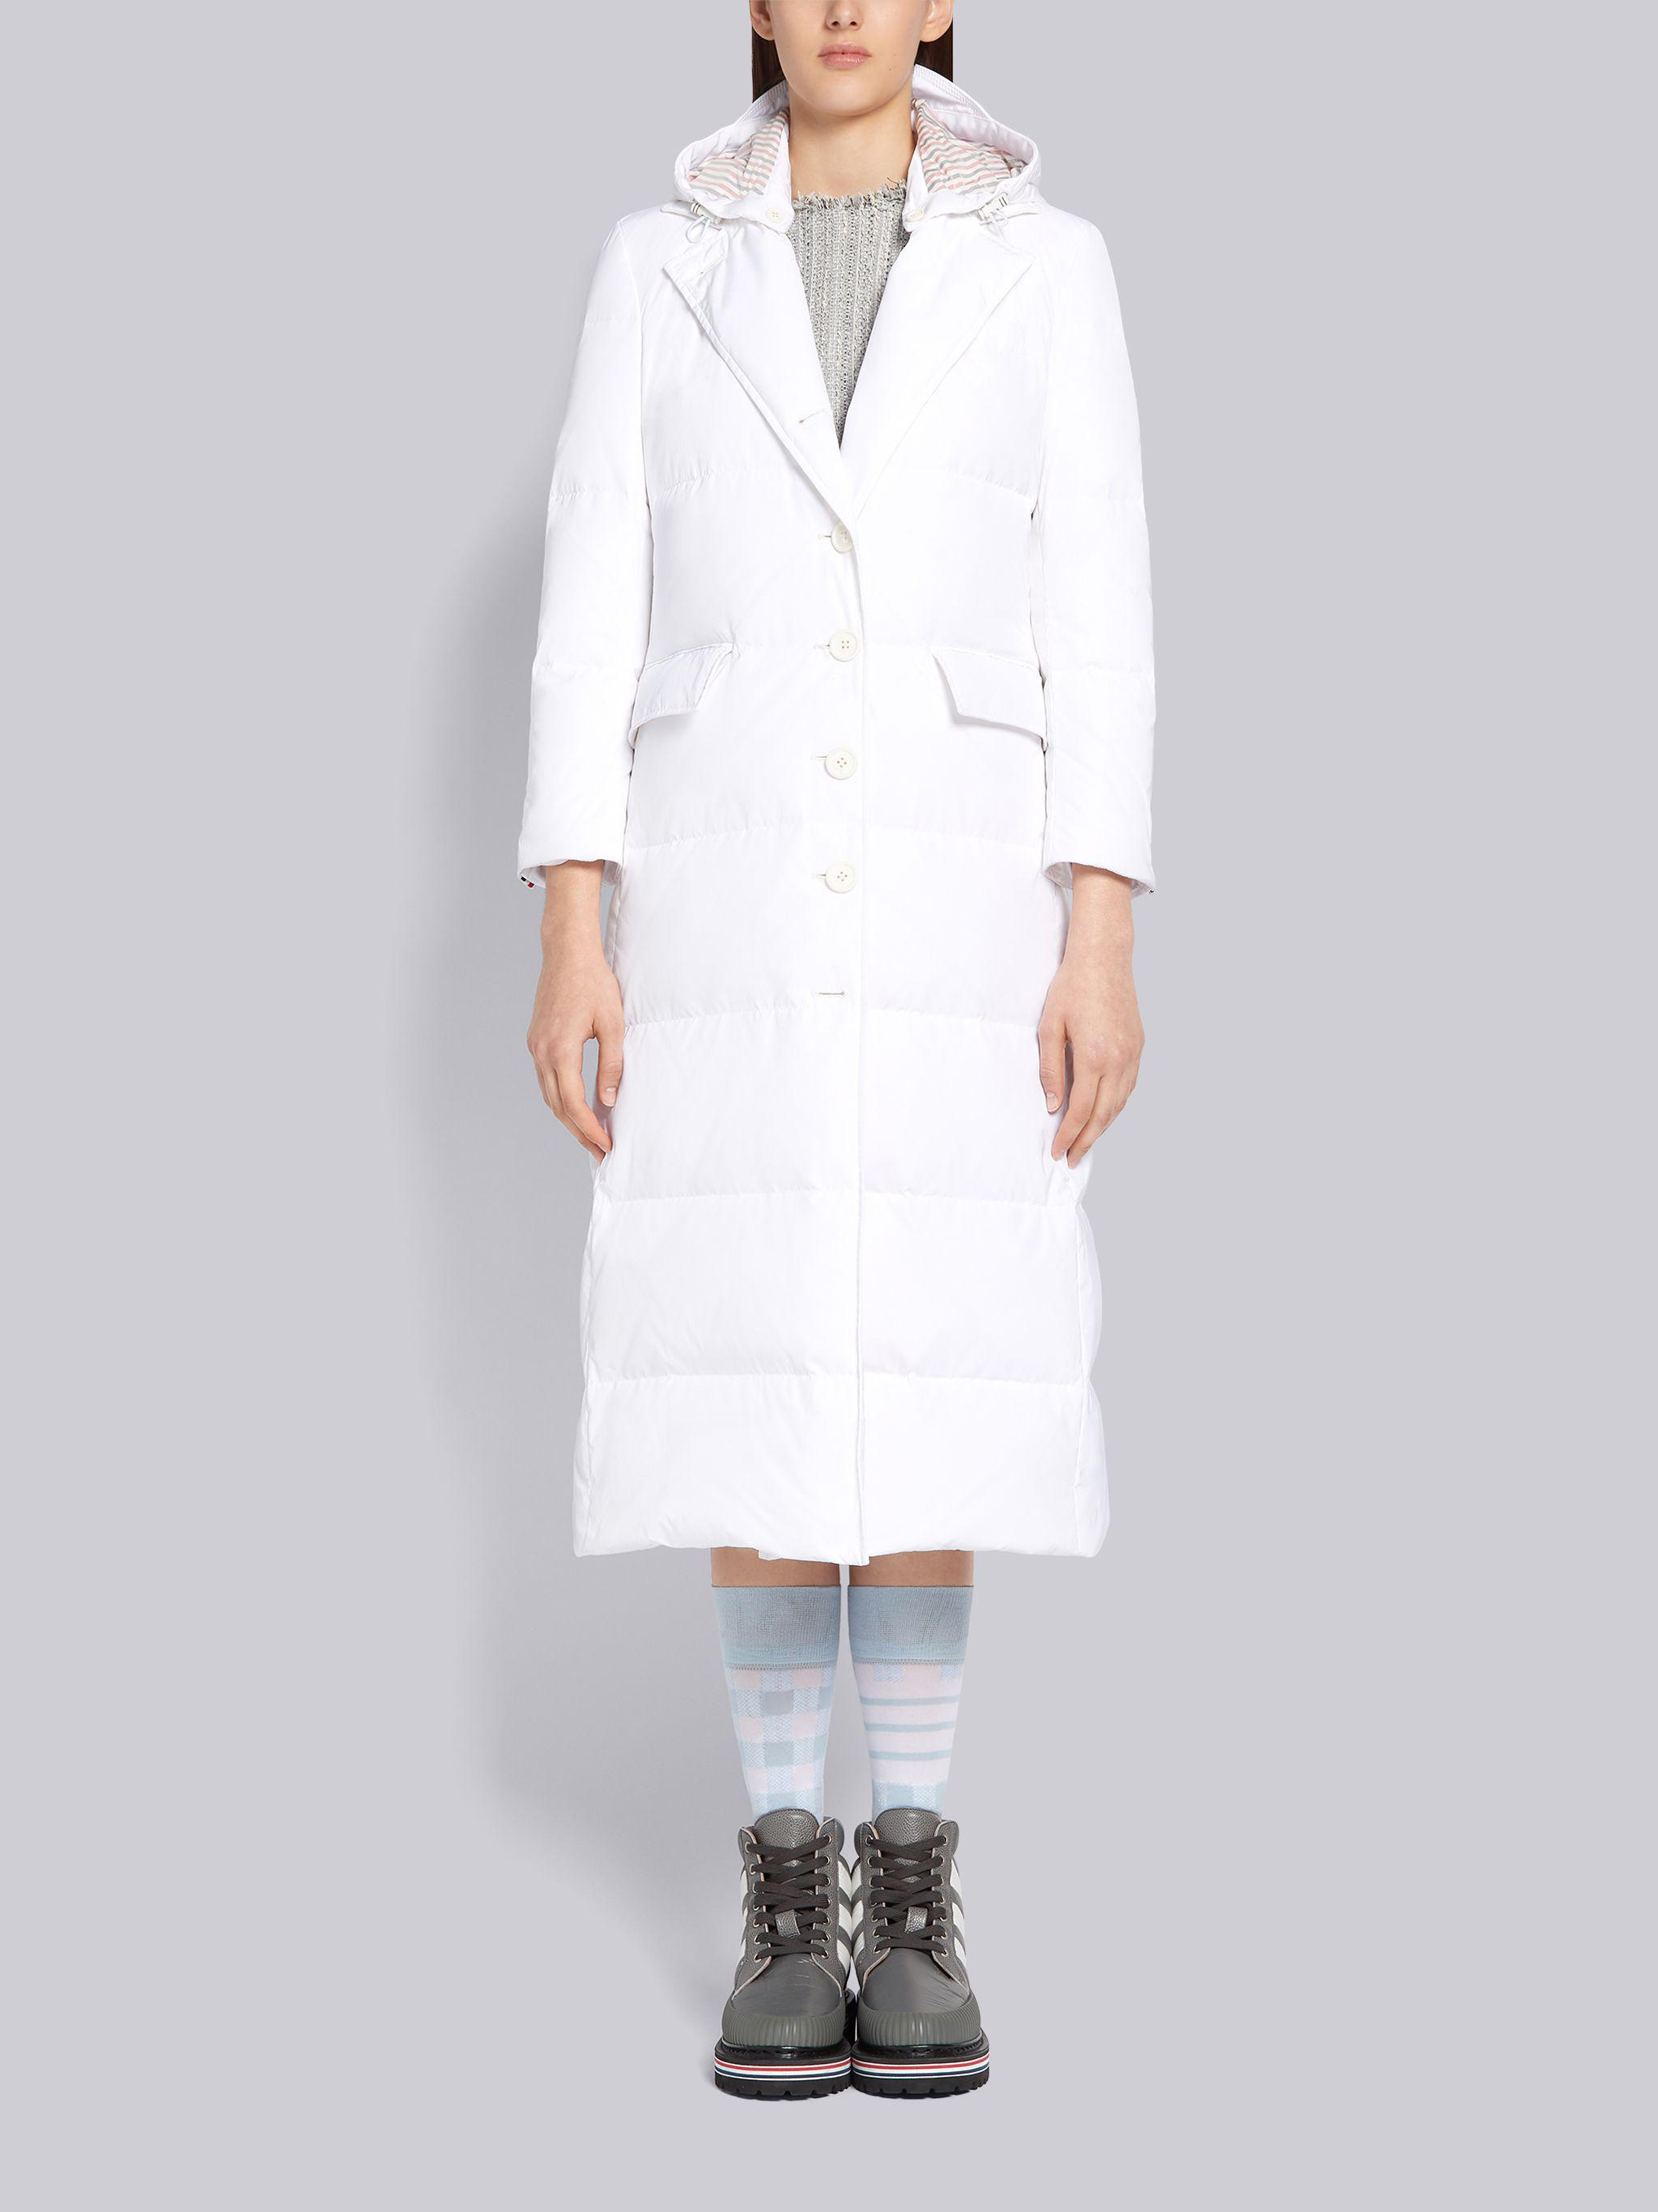 White Down Filled Poly Twill Center Back Stripe Wide Lapel Removable Hood Overcoat